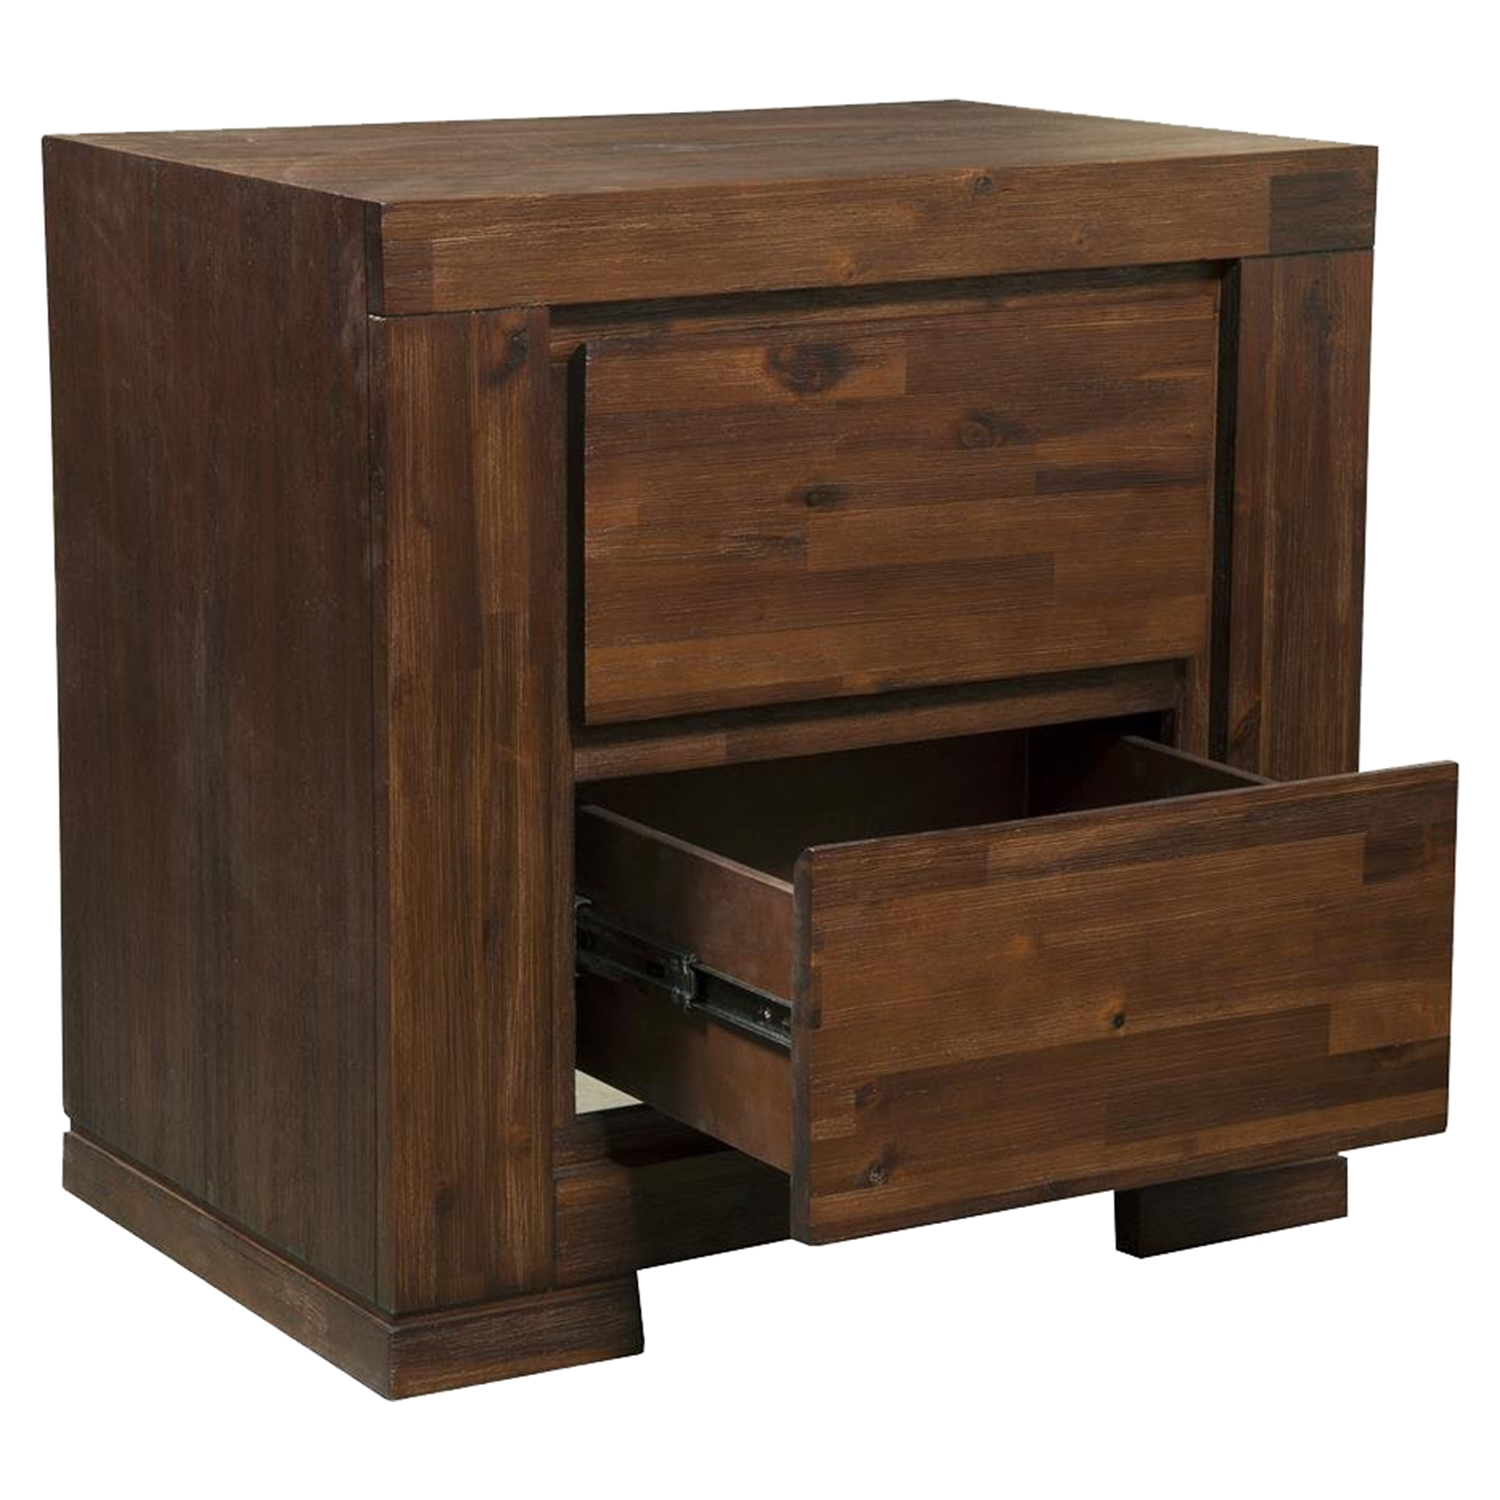 Pierre 2-Drawer Nightstand - Antique Cappuccino - ALP-8104-22